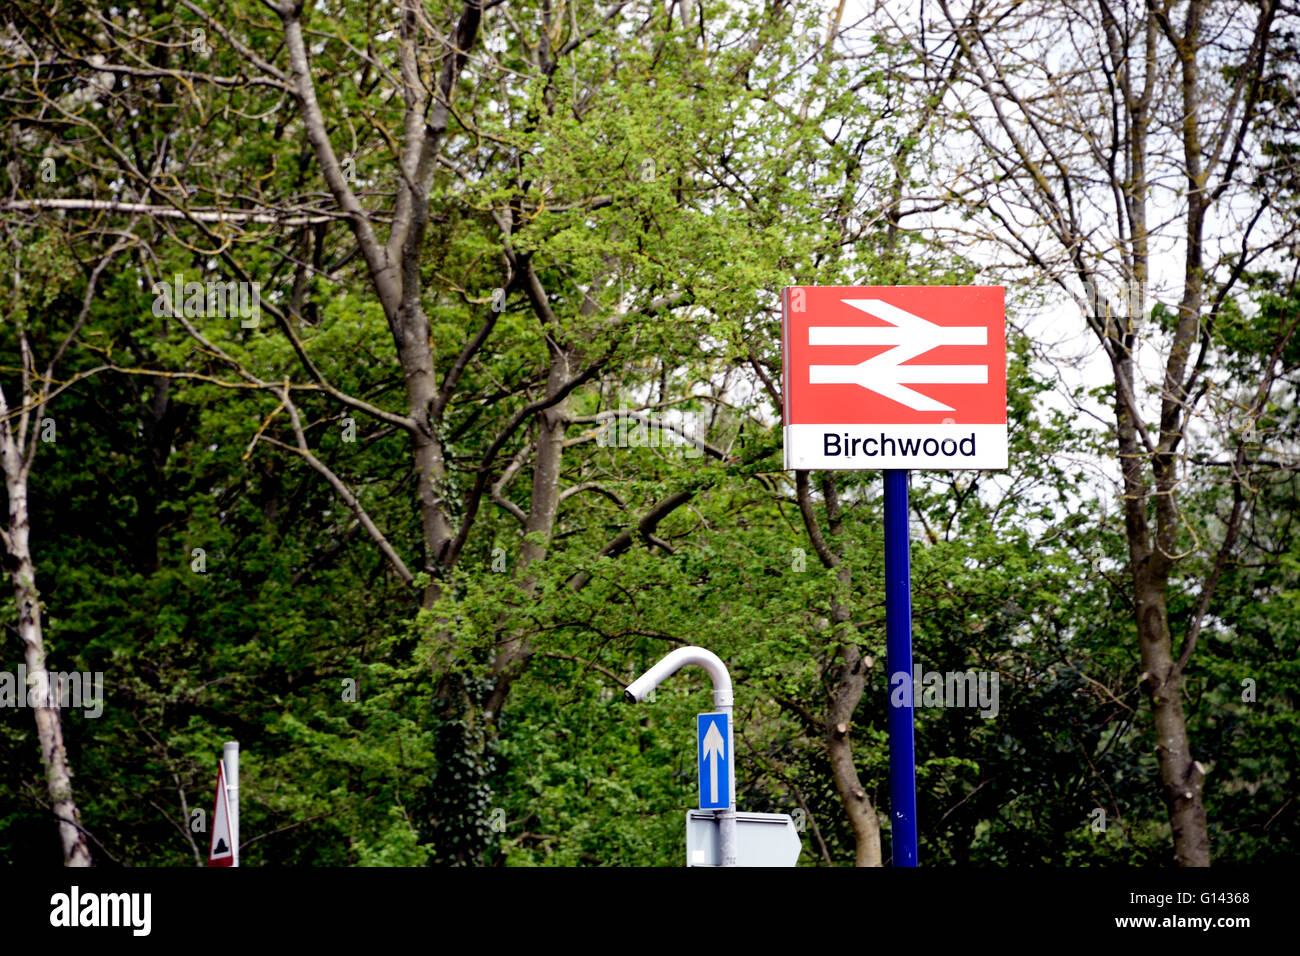 Birchwood, Warrington, Cheshire, UK 8th May, 2016. An incident at Birchwood rail station has closed the line between - Stock Image